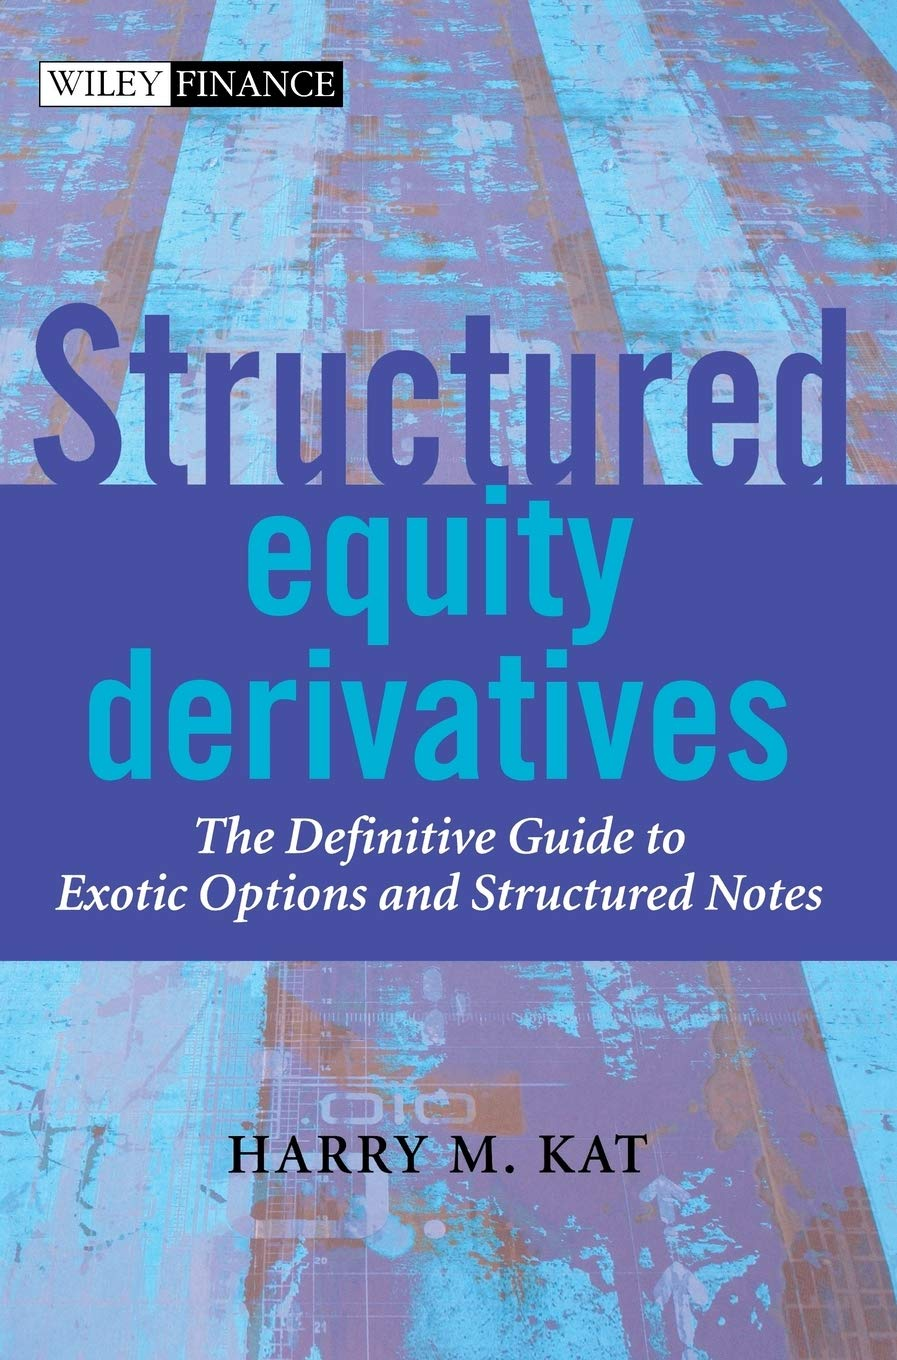 Image OfStructured Equity Derivatives: The Definitive Guide To Exotic Options And Structured Notes (Wiley Finance Series)